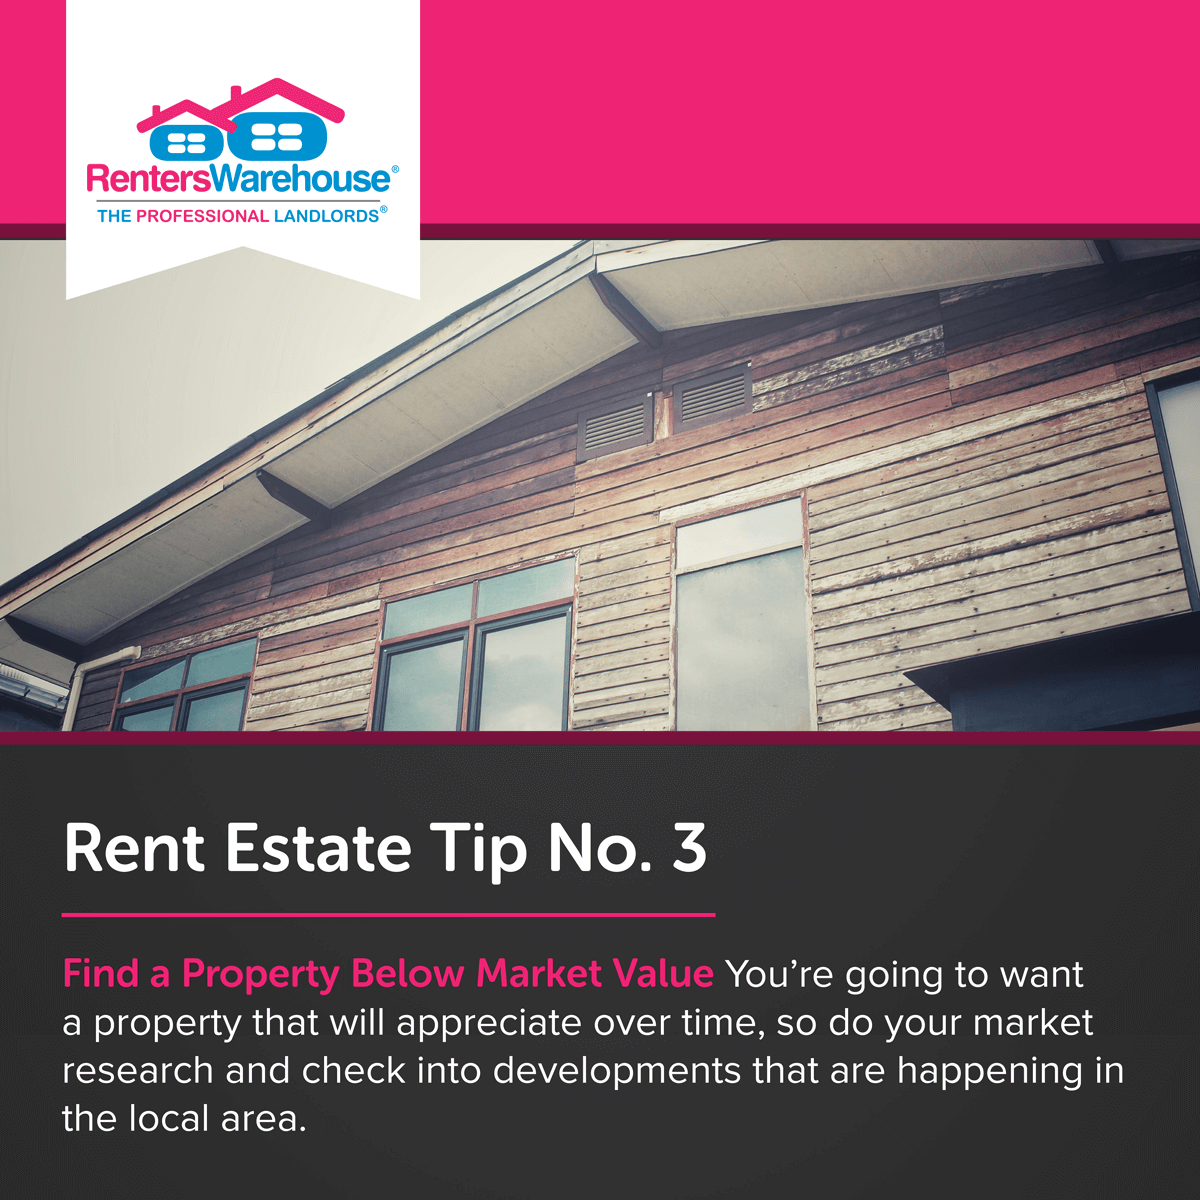 Image related to Rent Estate™ Tip No. 3 - Find a Property Below Market Value